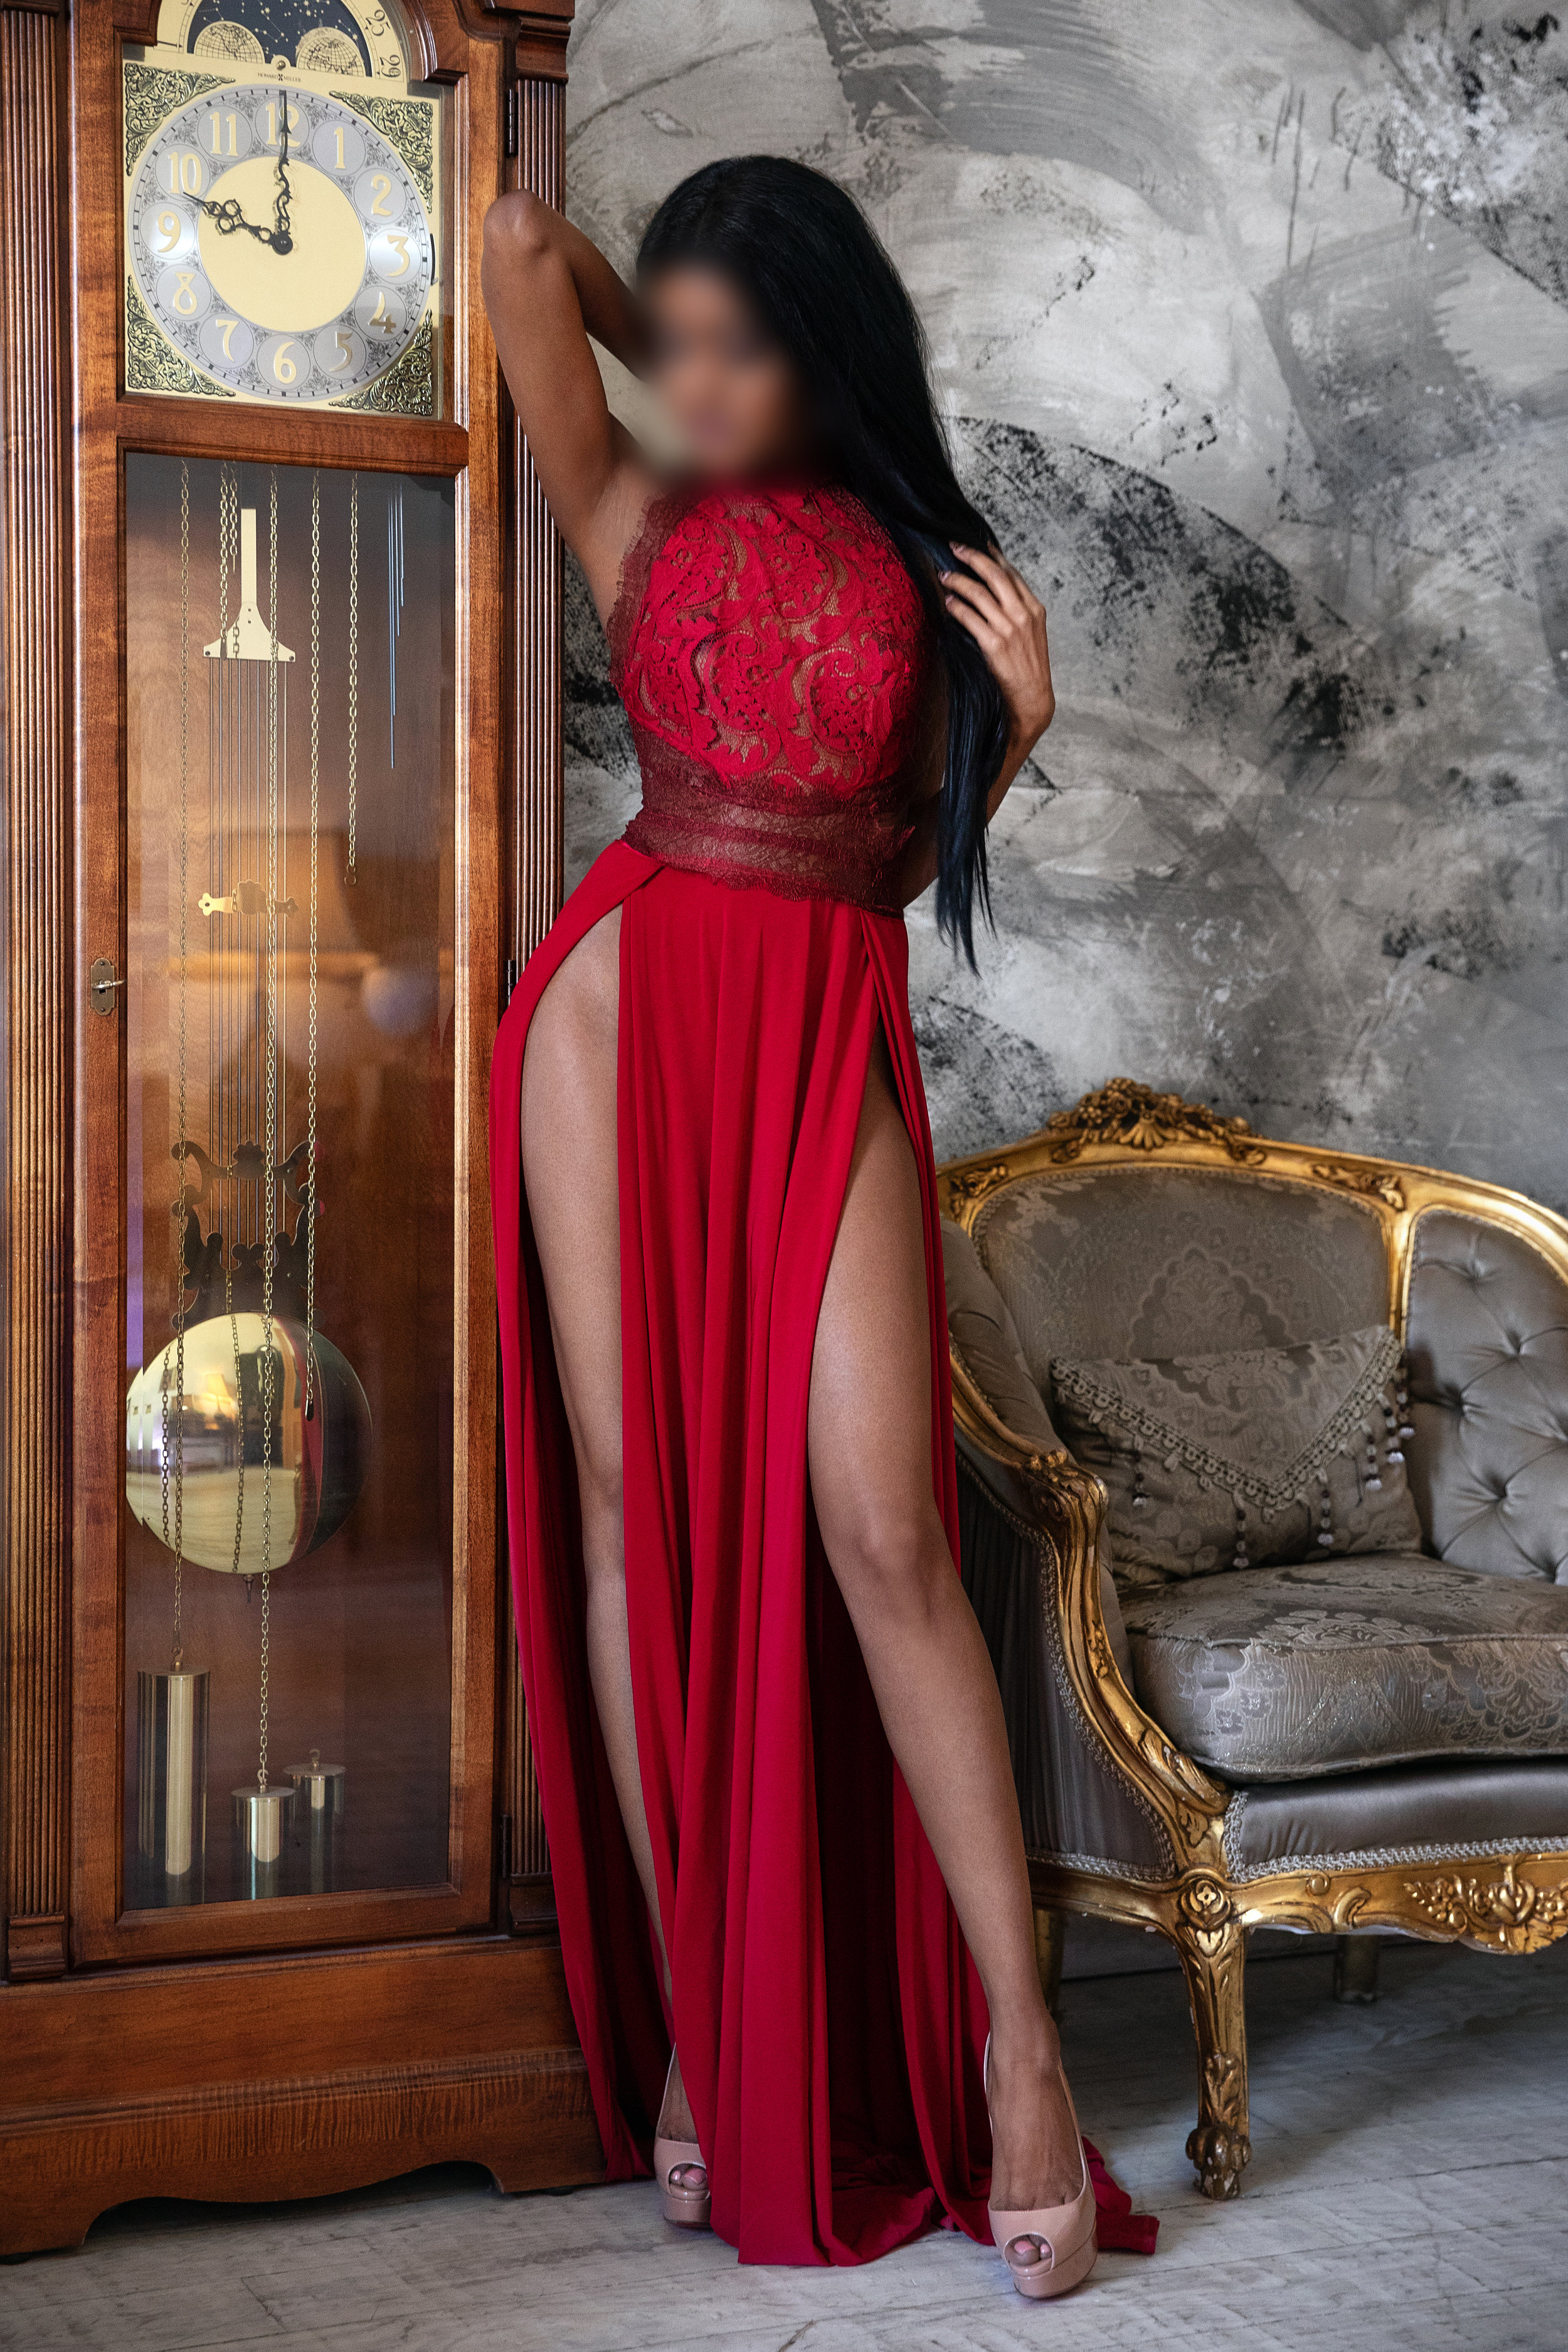 Personalized New York City Tours - Upcoming July Tour with NYC Dates: https://serenasahirnyc.com/toursSweet Treat (1hr)Let's set the spark in New York City.Outdoor Tour Only: 800Enchanting Introduction (up to 2hrs)New to the Big Apple and want to hear about what its got to offer?Outdoor Tour: 1000Indoor Tour: 1200Afternoon tour (3hr)Shall we leave some time to grab refreshments, and show you the finest New York sites there are?Outdoor Tour: 1300Indoor Tour: 1500Social tour (4hr)New York City is full of the finest events. Lets visit the Burlesque or have a meal at the finest restaurant.Outdoor Tour: 1600Indoor Tour: 1800Additional time**: 500 per hrHalf Day tour (6hr)Interested in doing New York style breakfast and lunch? Or maybe lunch and dinner? 20% deposit required.Outdoor Tour: 2500Indoor Tour: 2700Additional time**: 500 per hrSleepover tour (12hr)I could be yours for the entire night to indulge in the adventures Manhattan has to offer. A sleepover tour in city that never sleeps is only available to friends I've seen before or those extensively screened <3 20% deposit required.Outdoor Tour: 4000Indoor Tour: 4200Additional time**: 500 per hr_________________** I'm happy to extend our time to one of the above Tour Types, or at an additional fee.Please add 100 for any tours more than 30min from Midtown Manhattan and 50 per each additional 30min of travel time to and from.